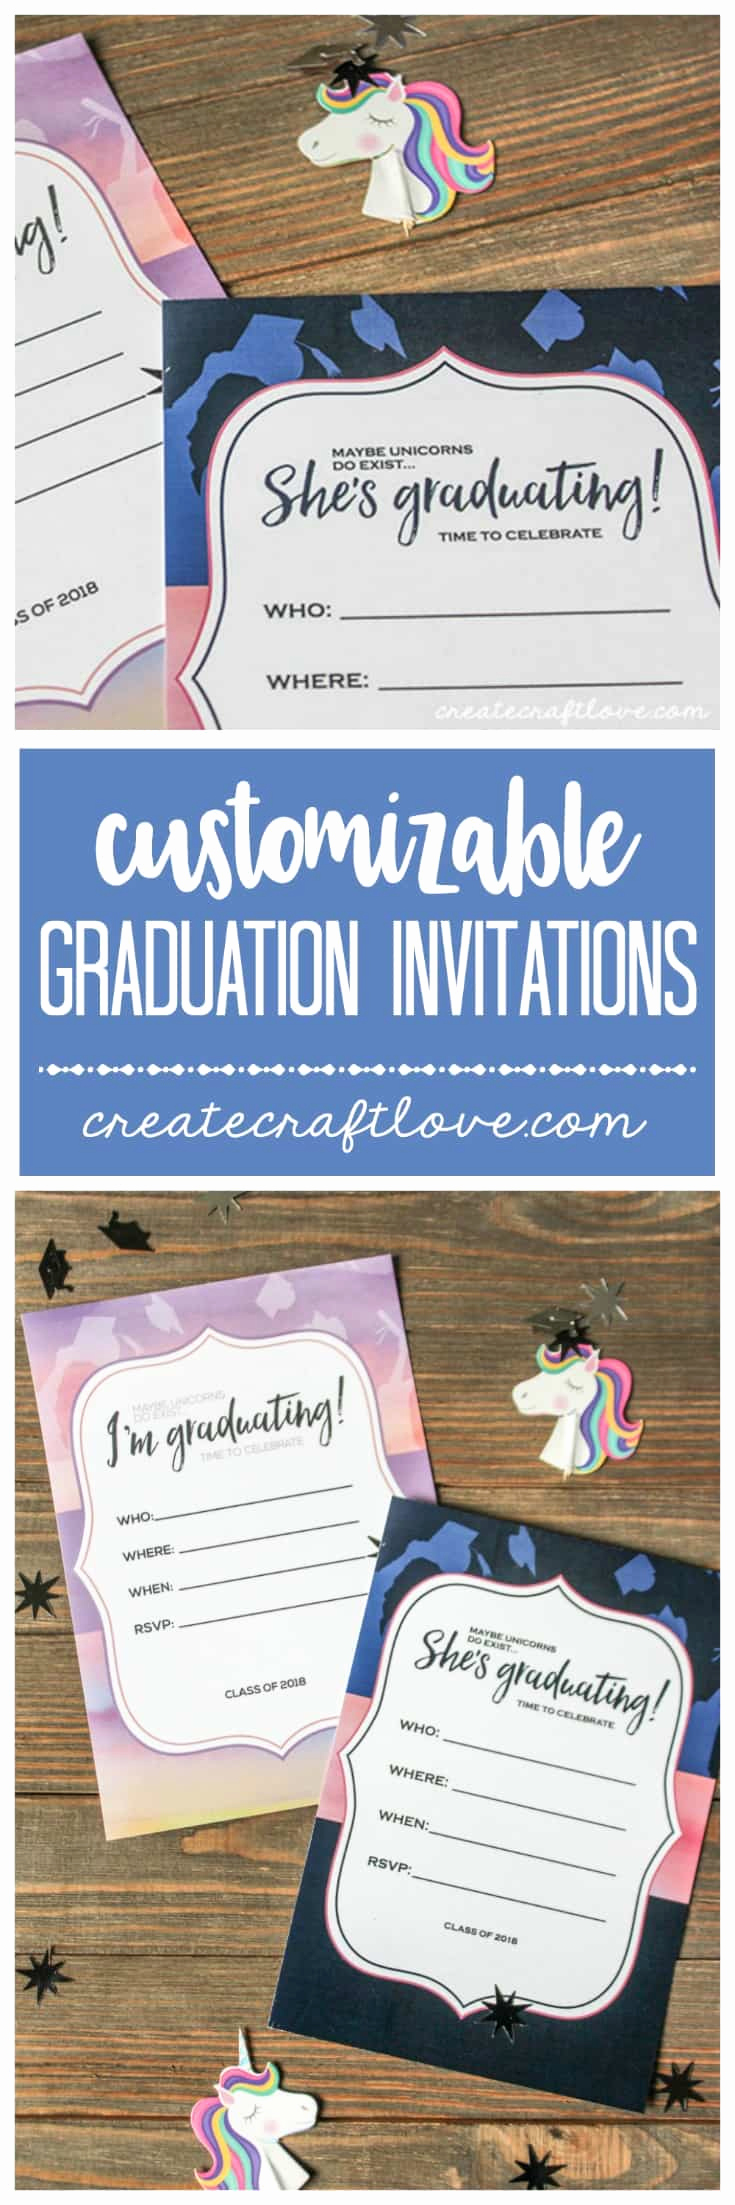 Create Graduation Invitation Online Elegant Customizable Graduation Invitations Create Craft Love